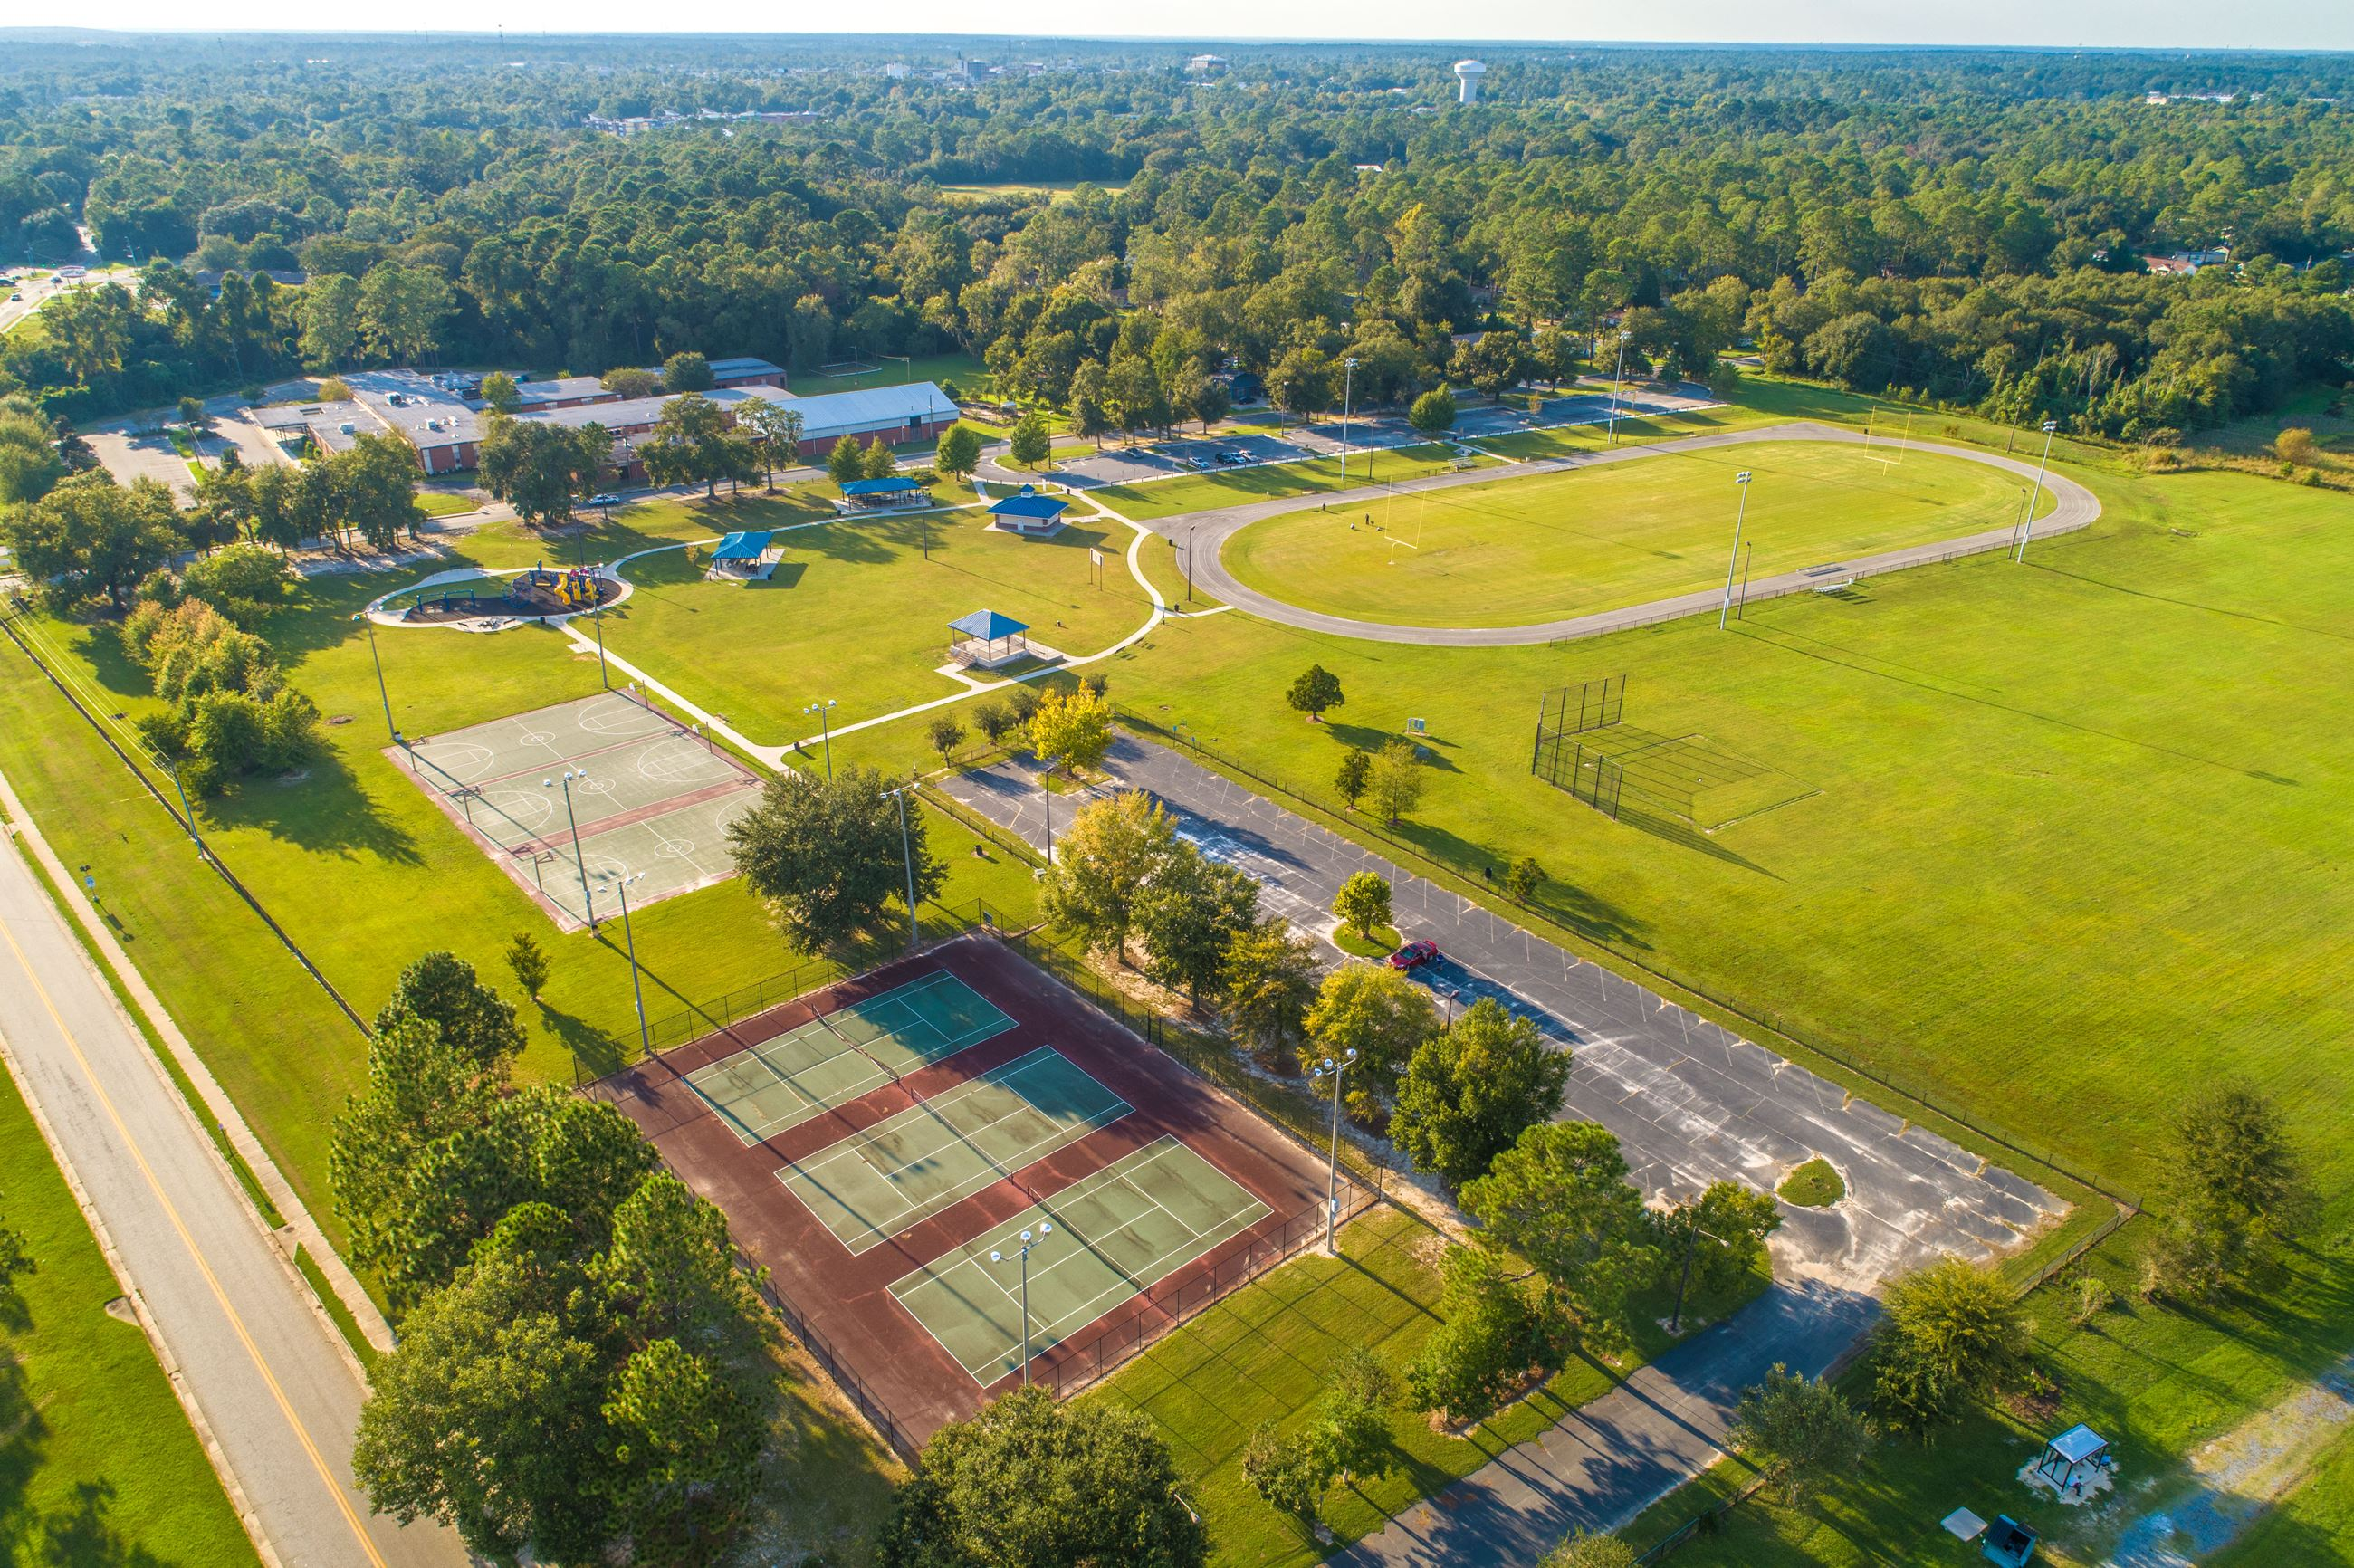 Image showing an aerial view of tennis courts and basketball courts.